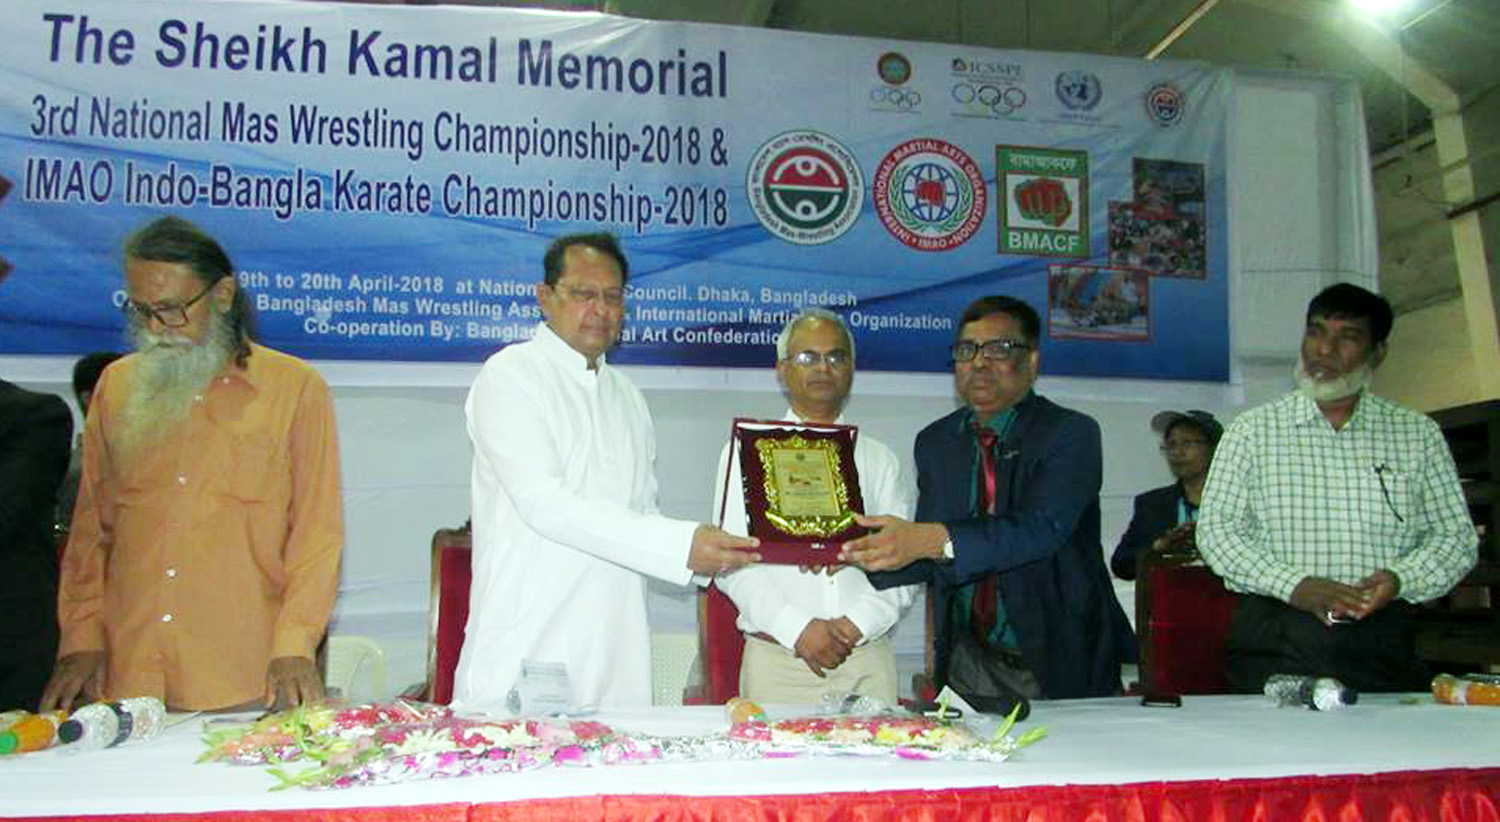 Minister for Information Hasanul Haq Inu, MP, speaking at the inaugural ceremony of the Sheikh Kamal Memorial 3rd National Mas-Wrestling Championship as the chief guest at the National Sports Council on Thursday.